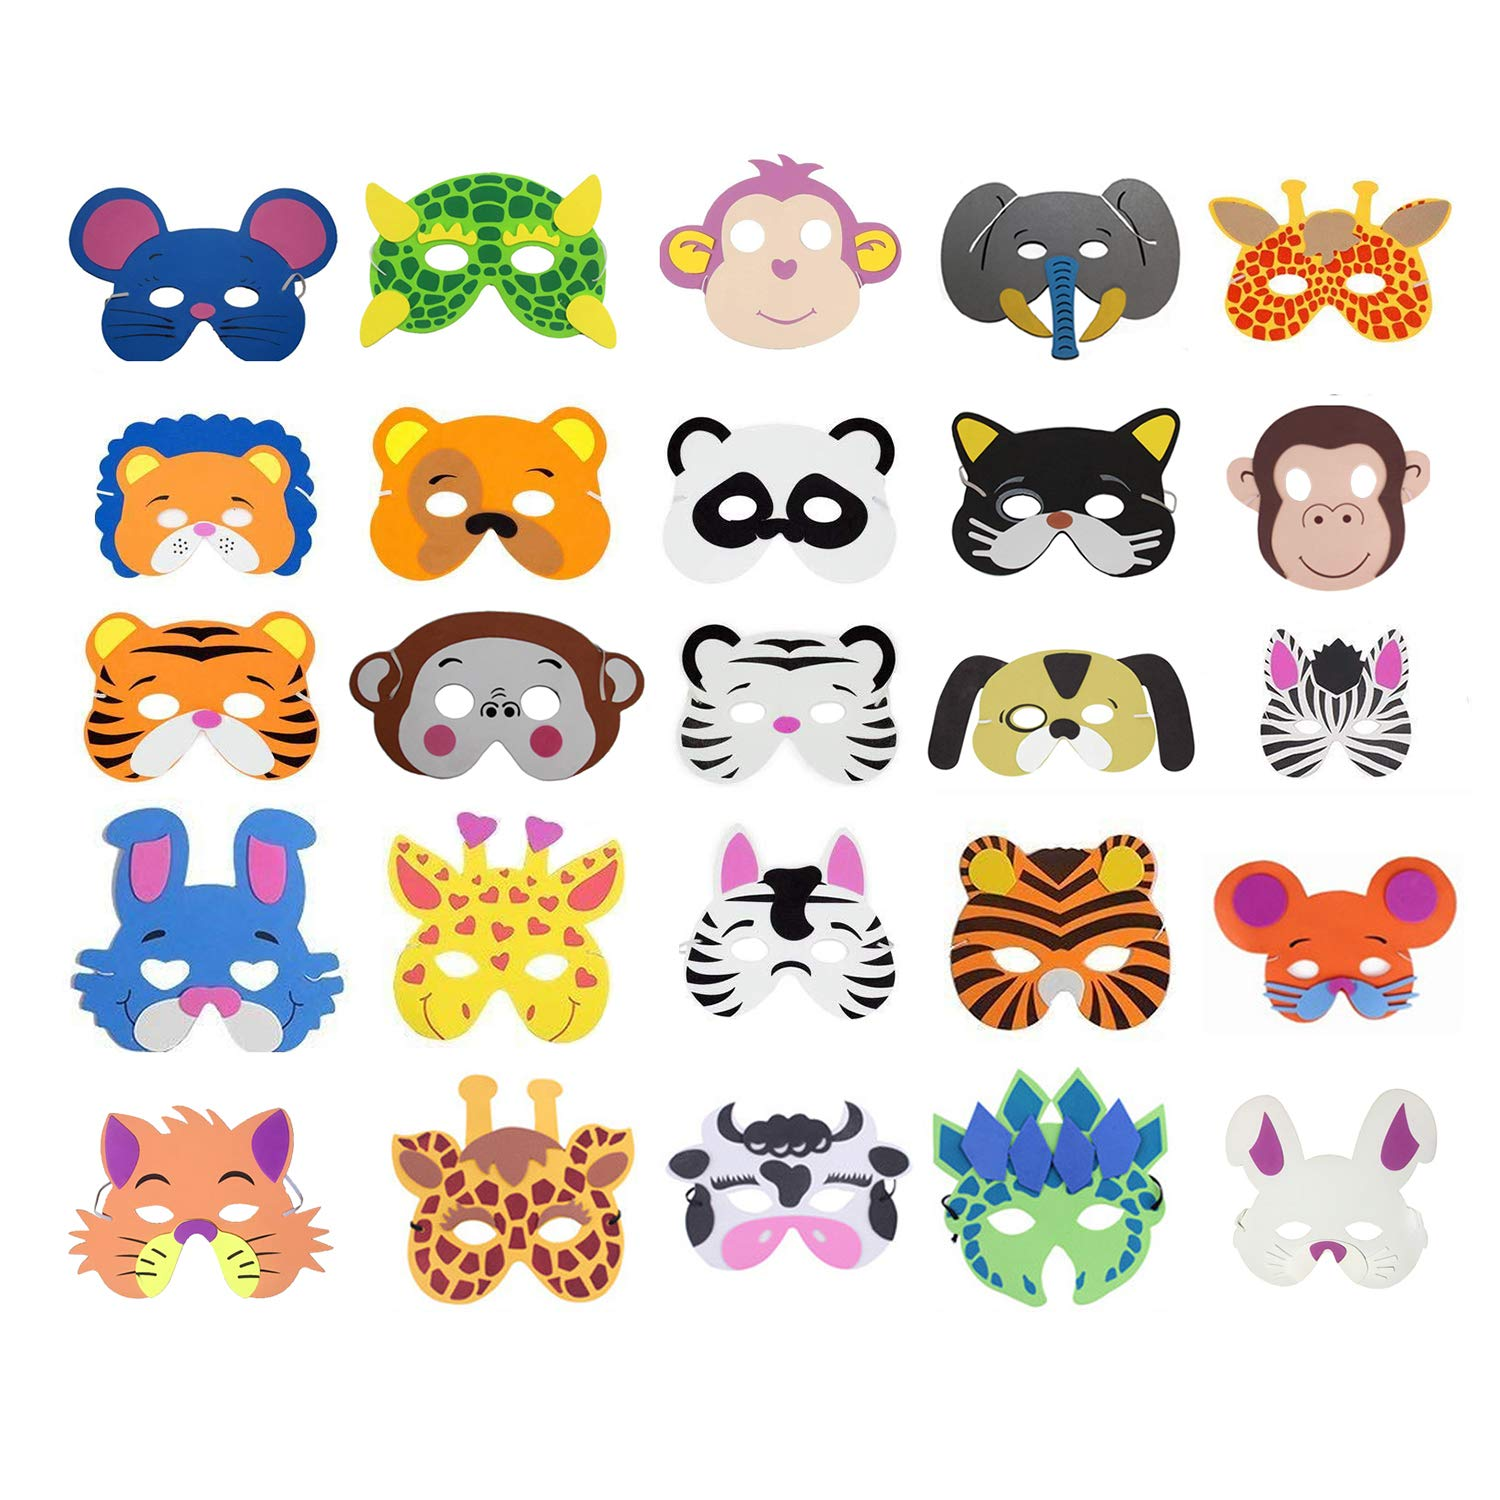 COSORO 25 Kids Eva Foam Animal Masks for Party Bag Fillers Masquerade Birthday Party Christmas Halloween